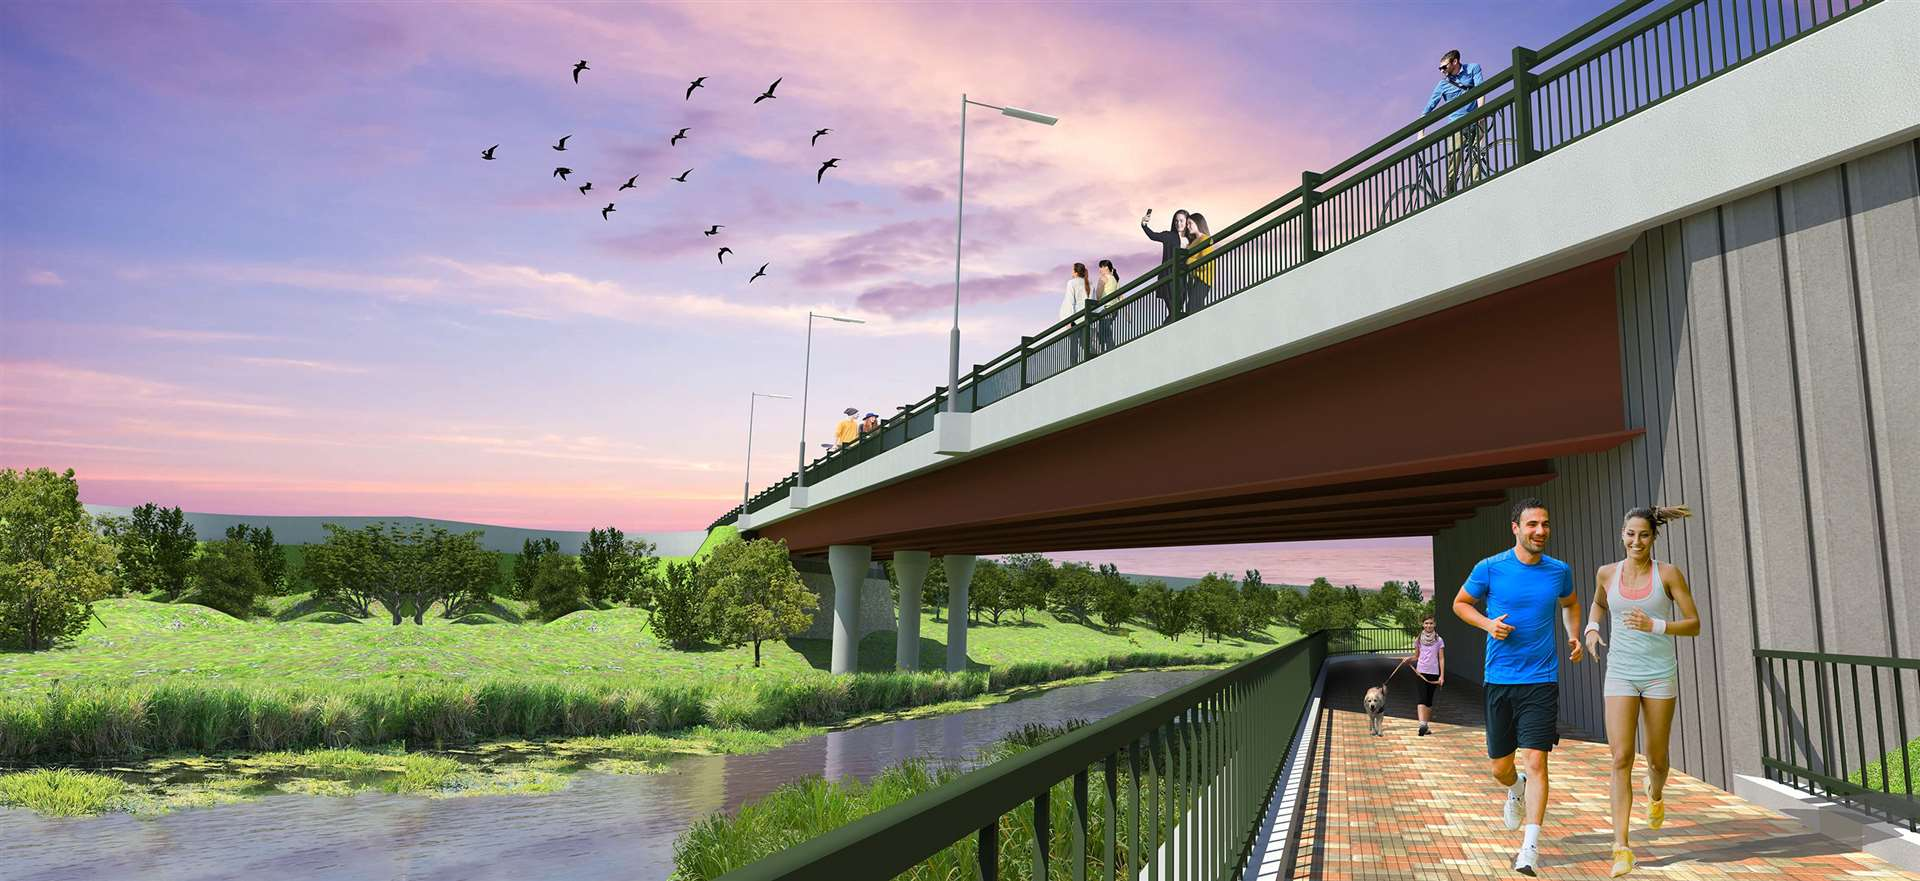 An artist's impression of how the bridge will look once finished next year. Picture Credit: Ebbsfleet Development Corporation (18383790)